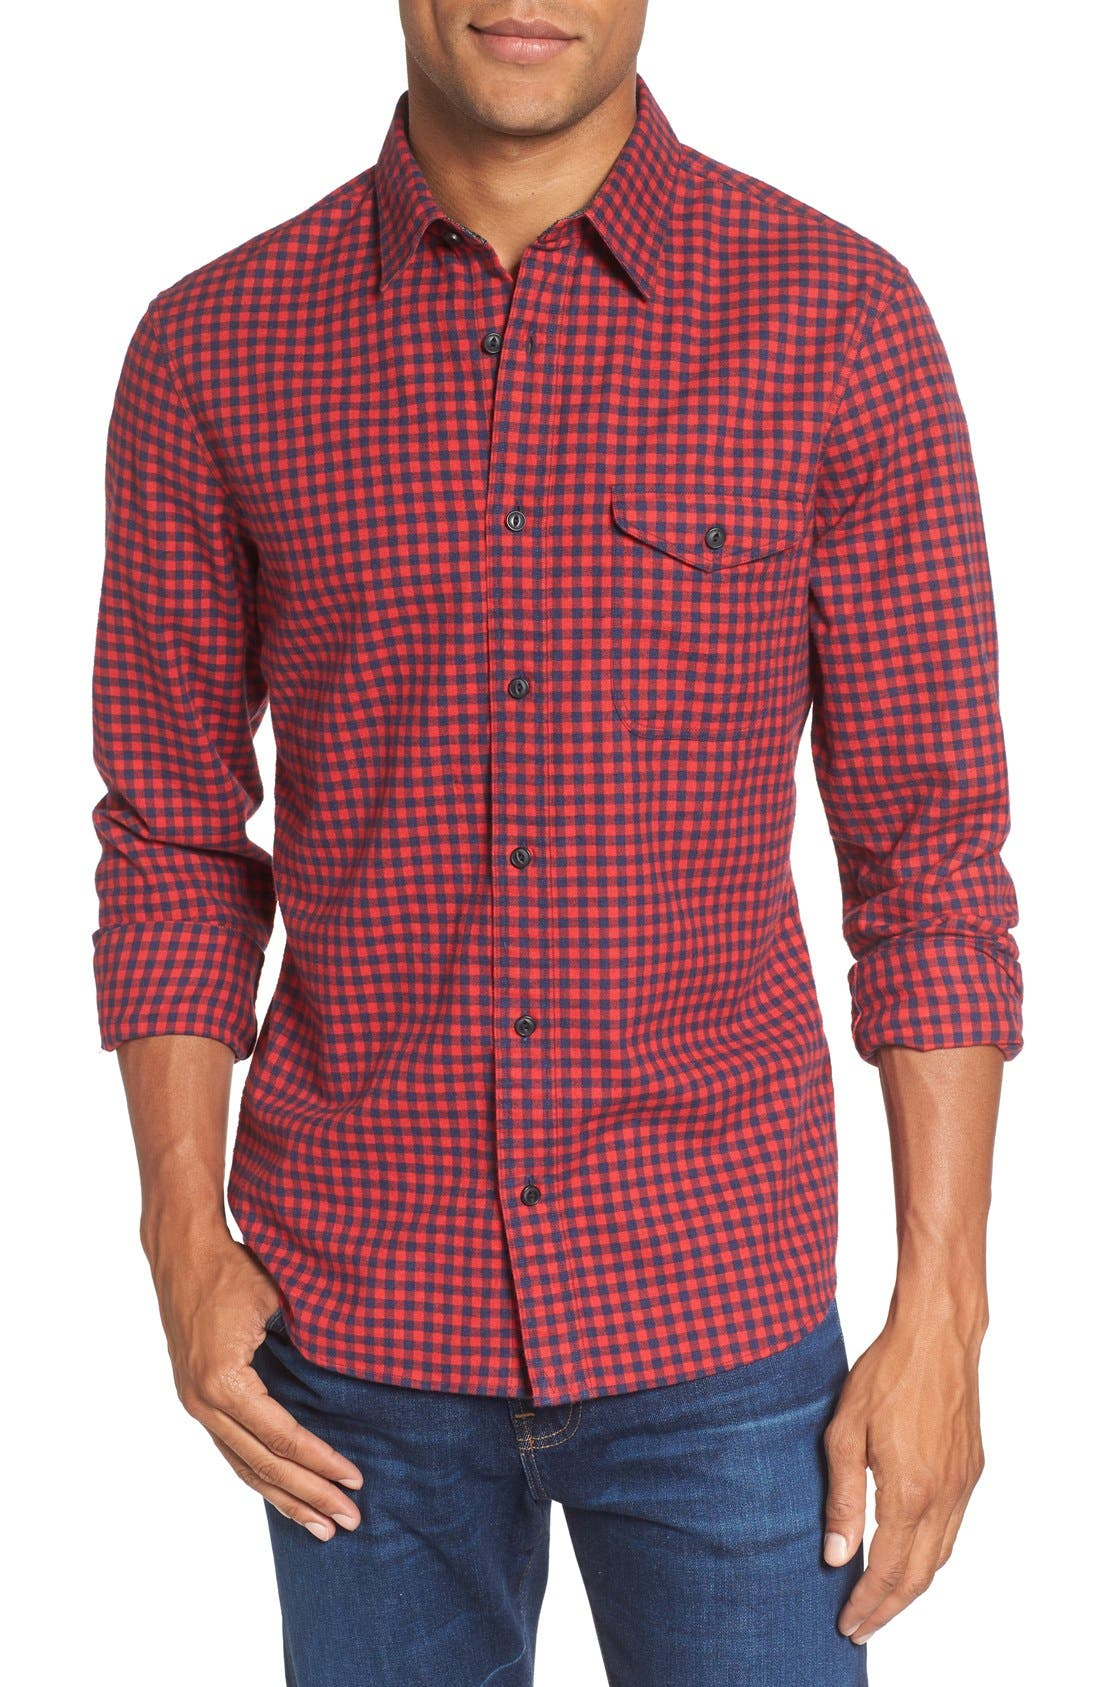 Alternate Image 1 Selected - Nordstrom Men's Shop Slim Fit Gingham Flannel Sport Shirt